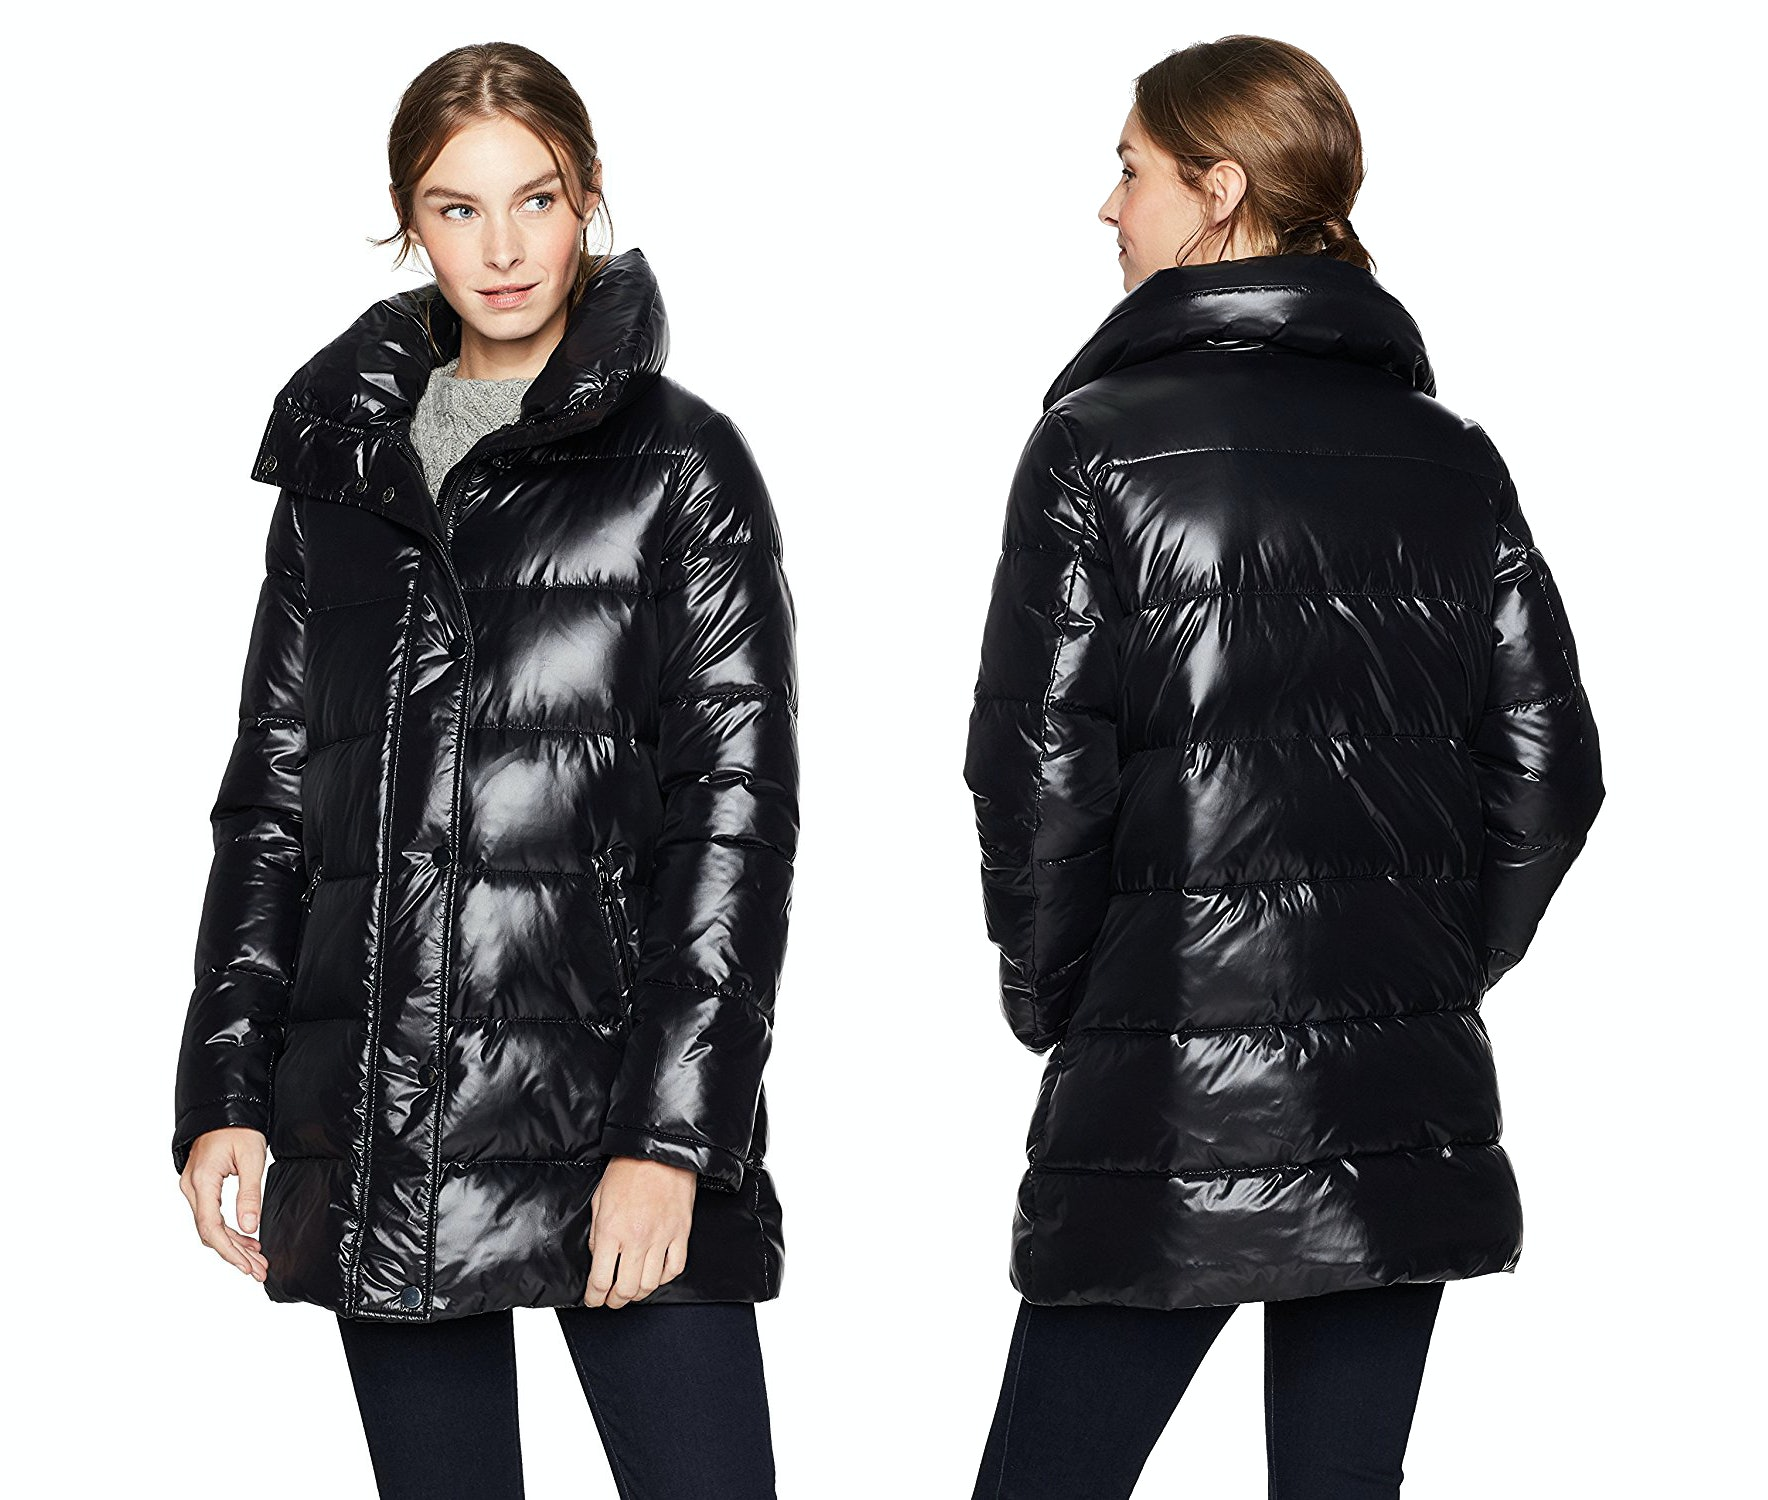 44fc813d4 10 Warmest Women's Winter Coats Under $100